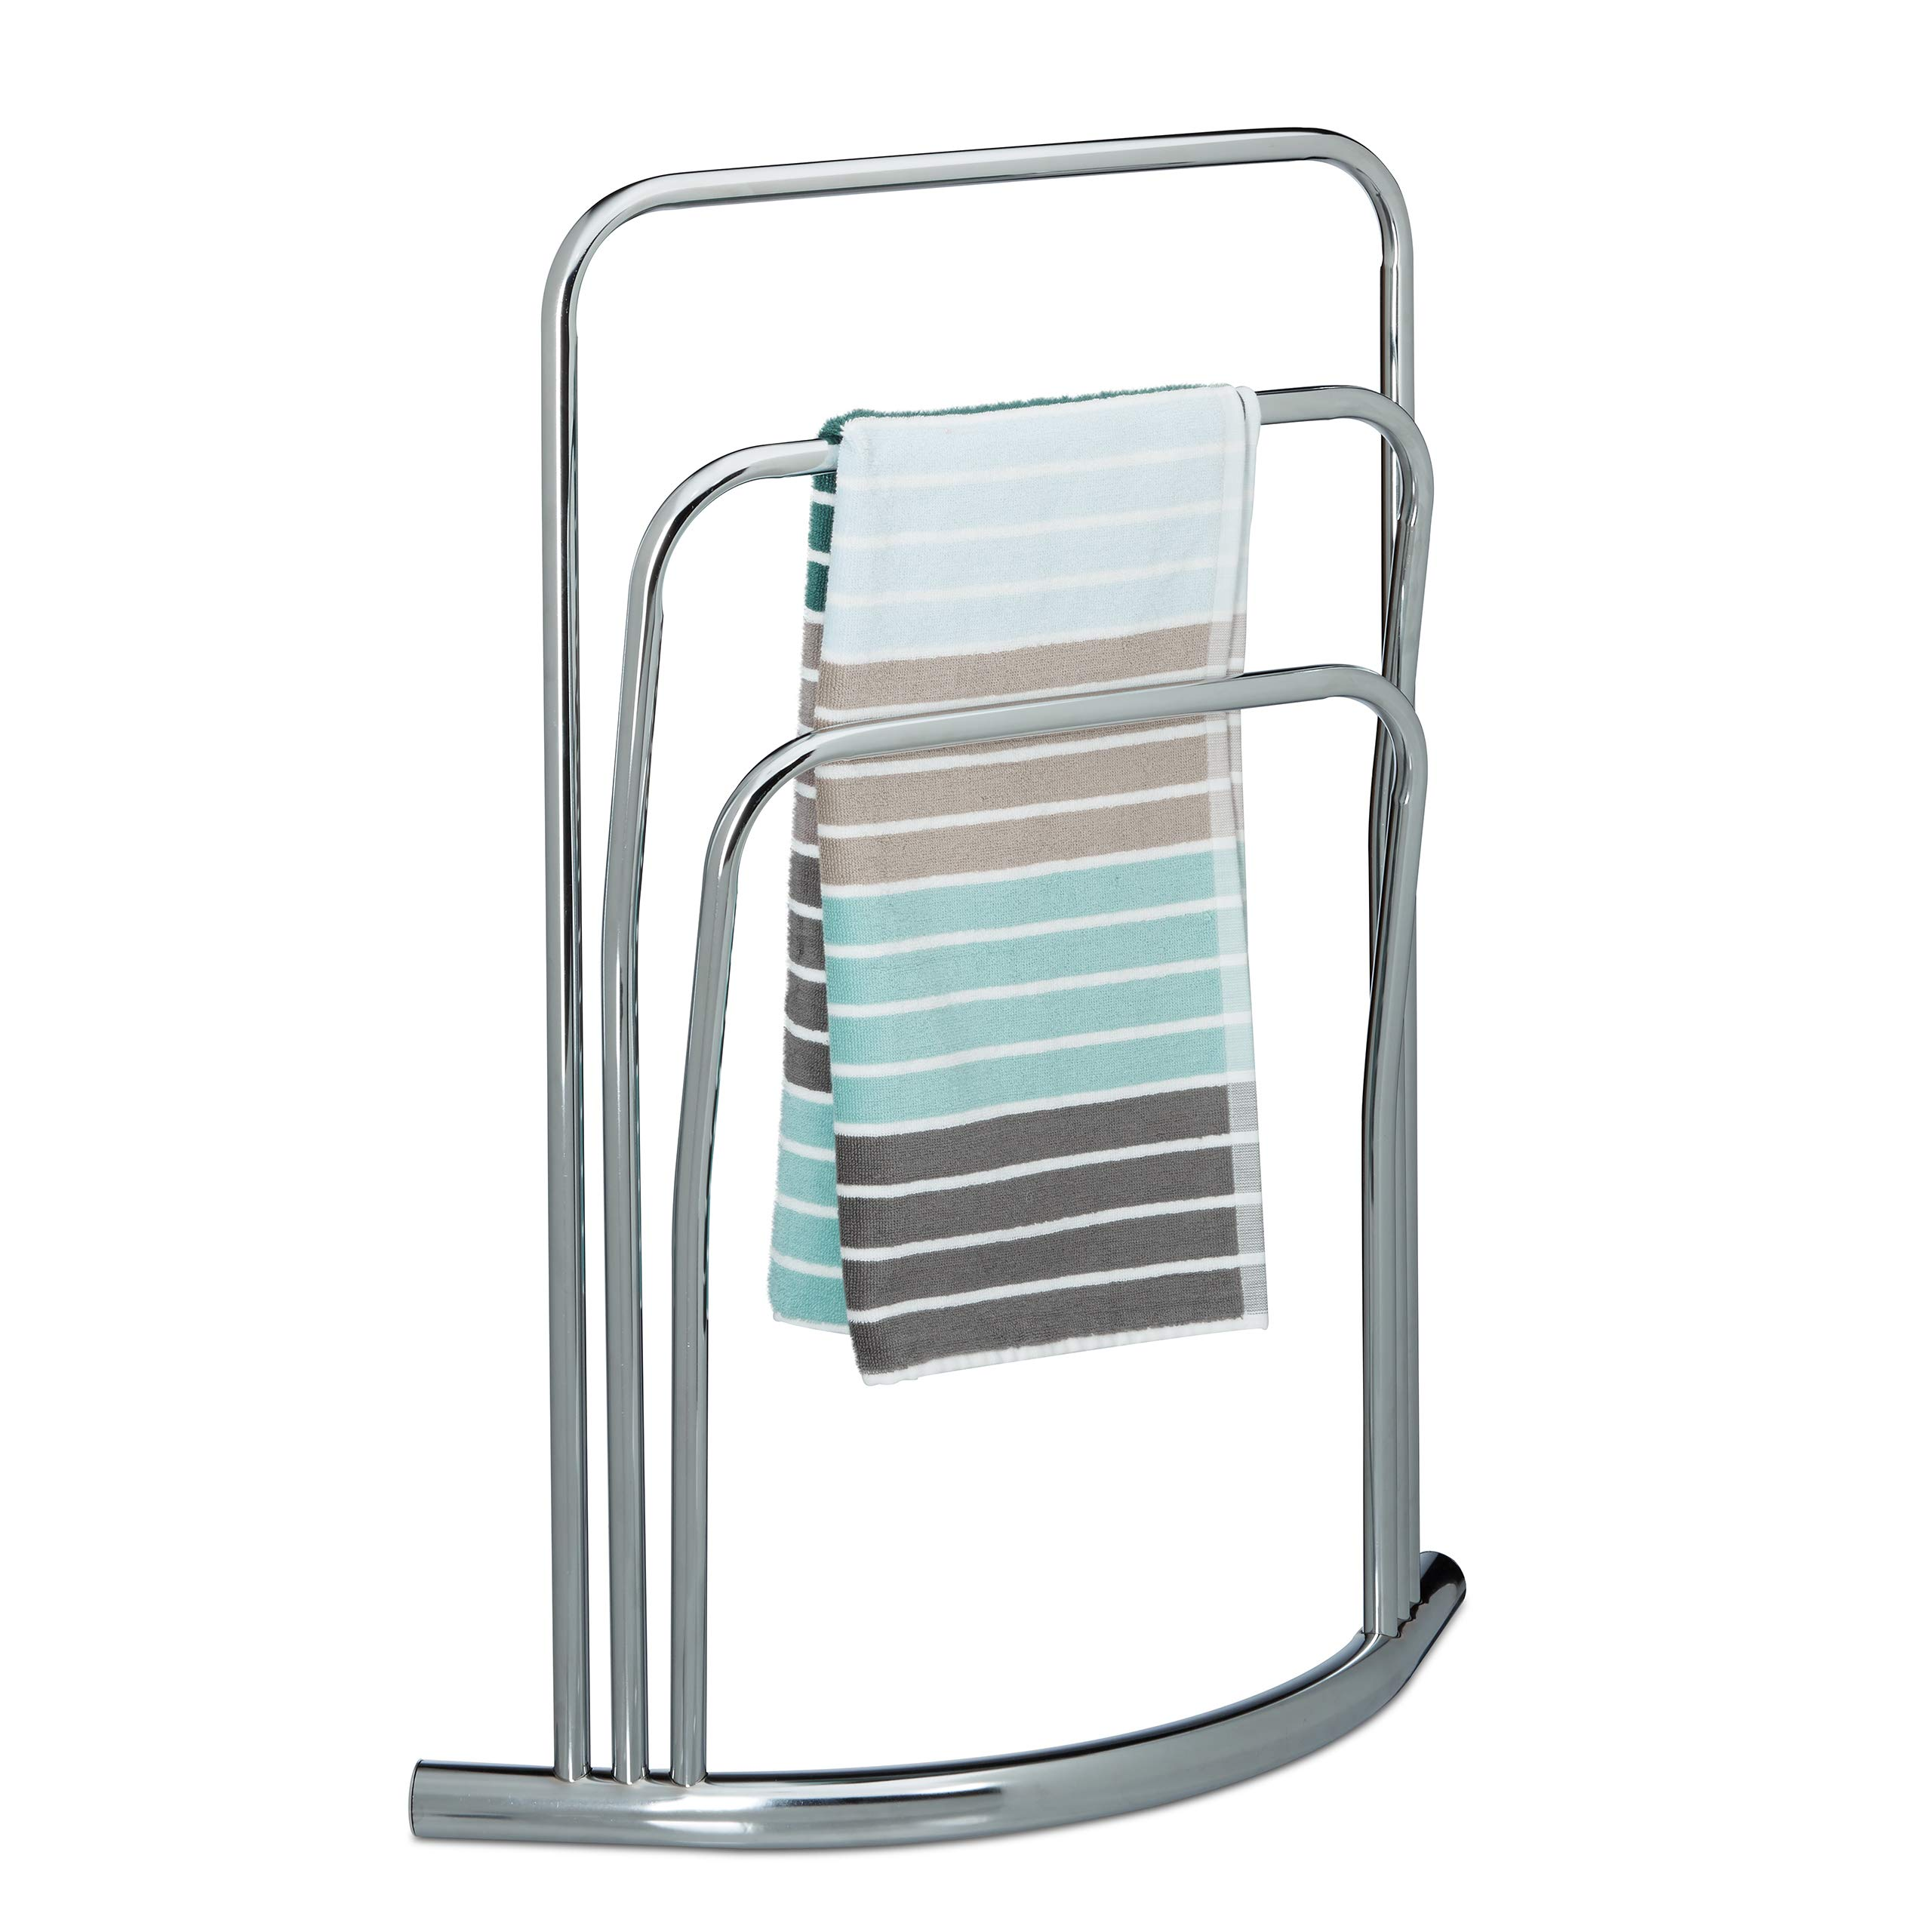 Relaxdays CURVY 3 Rails, Size: 85 x 66 x 20 cm Free Rack Towel Holder made of Metal in Stainless Steel Look as Bathroom Stand, Silver, 20 x 66 x 85 cm